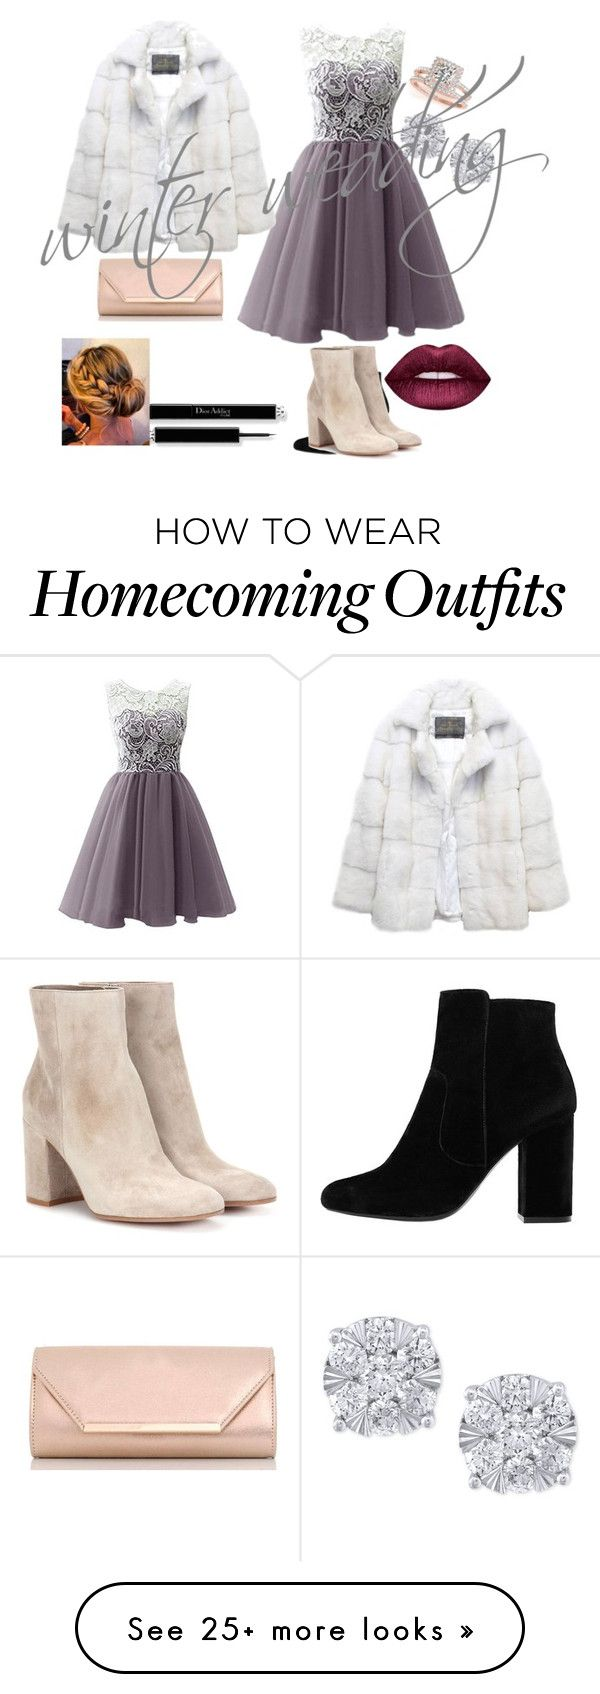 """""""#winterwedding"""" by dixielou321 on Polyvore featuring Lilly e Violetta, MANGO, Gianvito Rossi, Dorothy Perkins, Allurez, Effy Jewelry and Lime Crime"""